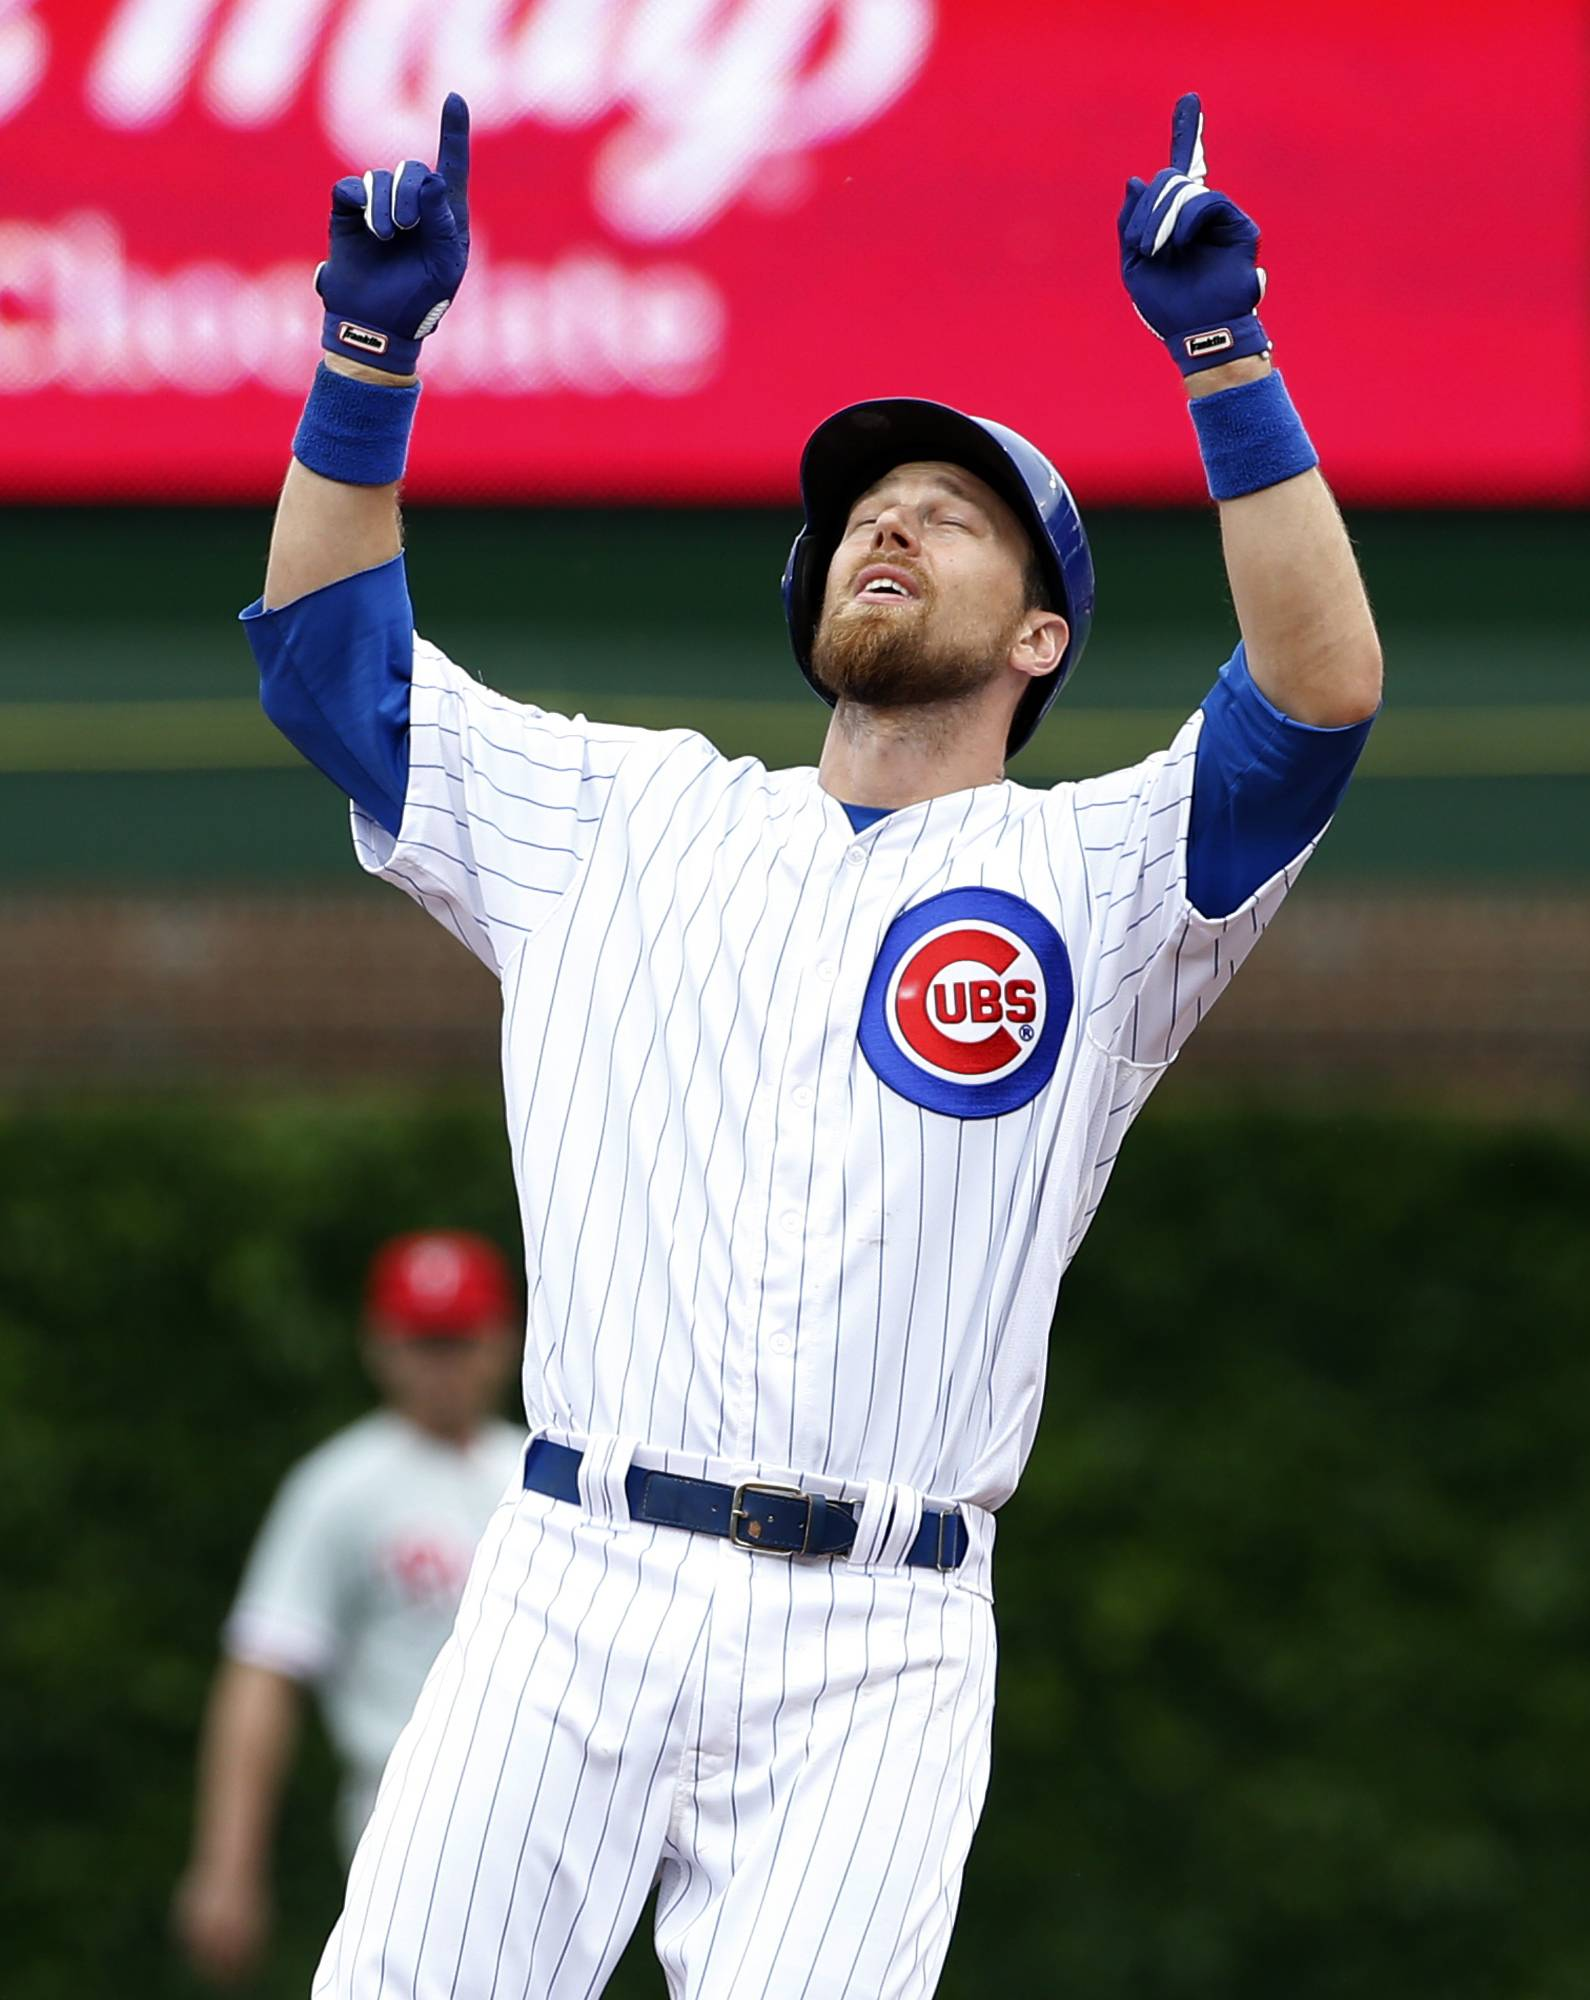 Chicago Cubs' Ben Zobrist celebrates after hitting an an RBI double during the first inning of a baseball game against the Philadelphia Phillies Saturday, May 28, 2016, in Chicago. (AP Photo/Nam Y. Huh)